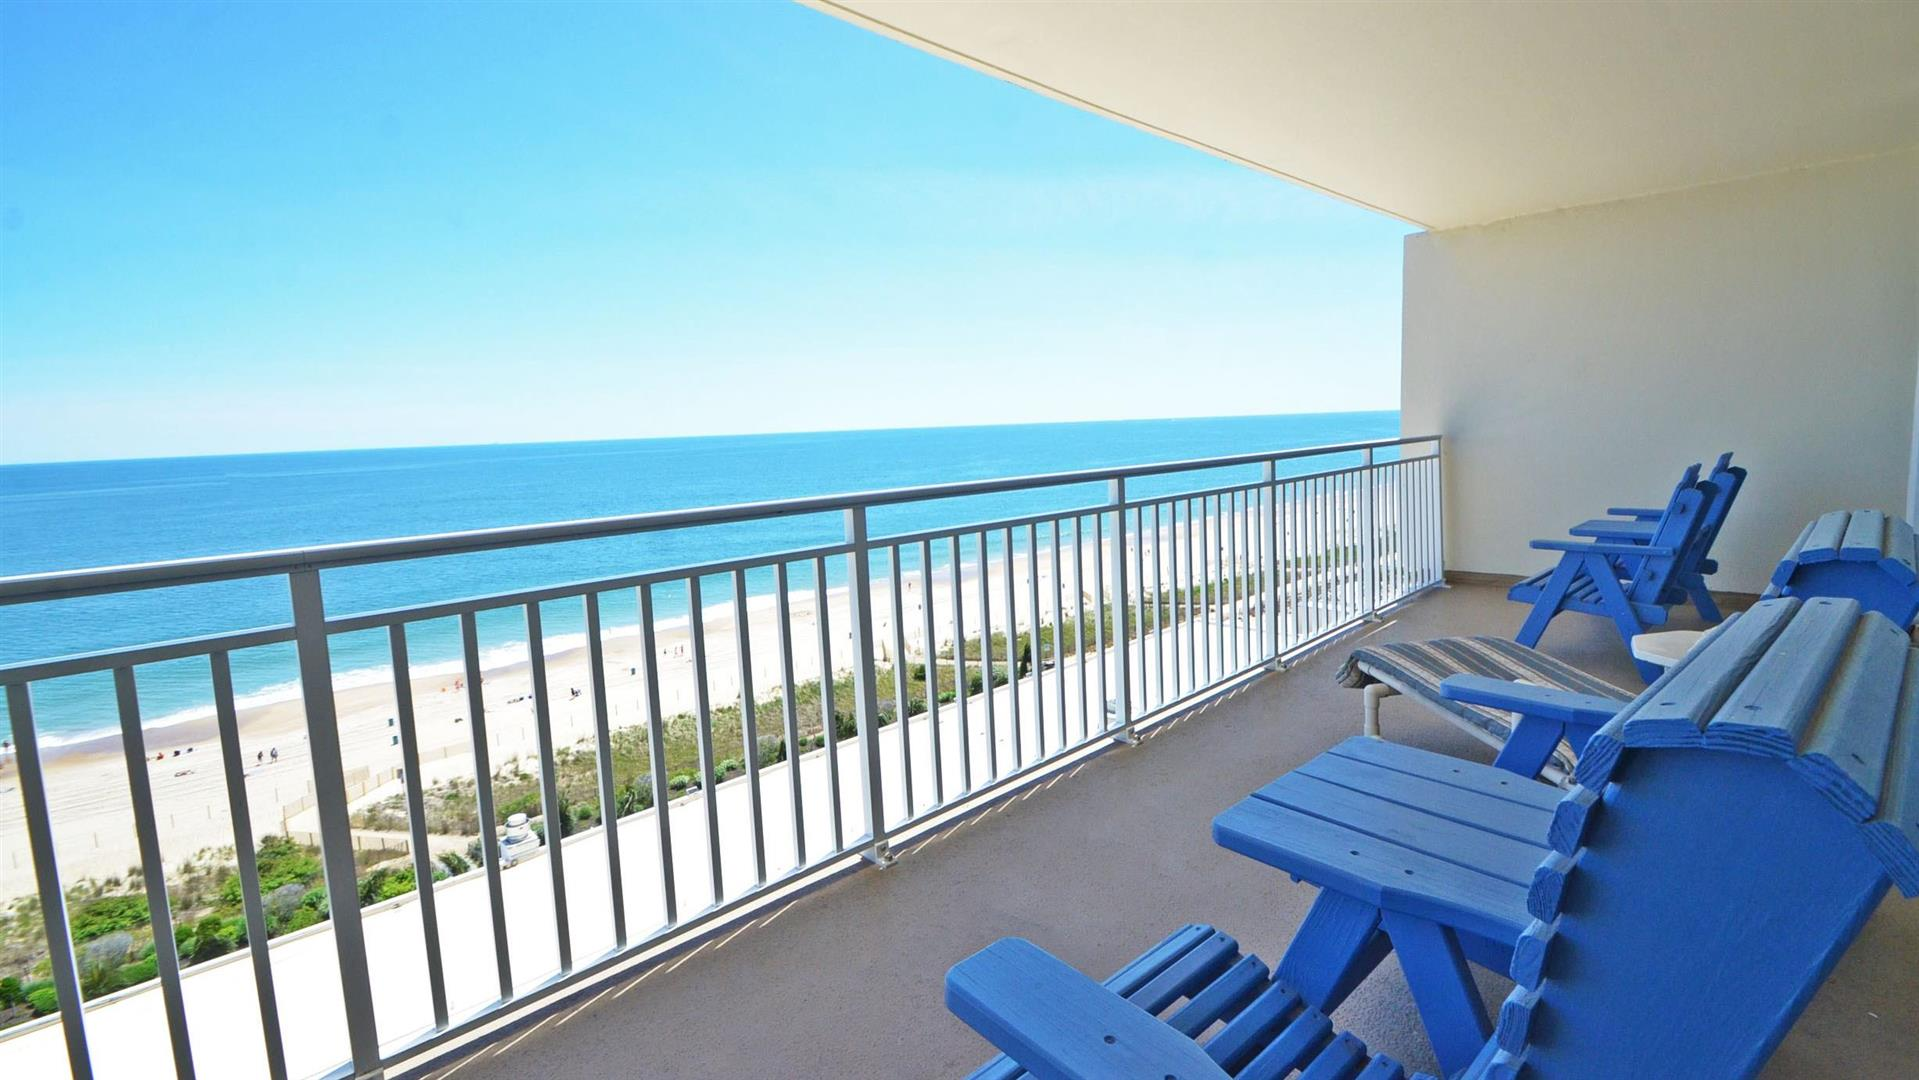 Meetings and Events at Carousel Oceanfront Hotel & Condominiums ...